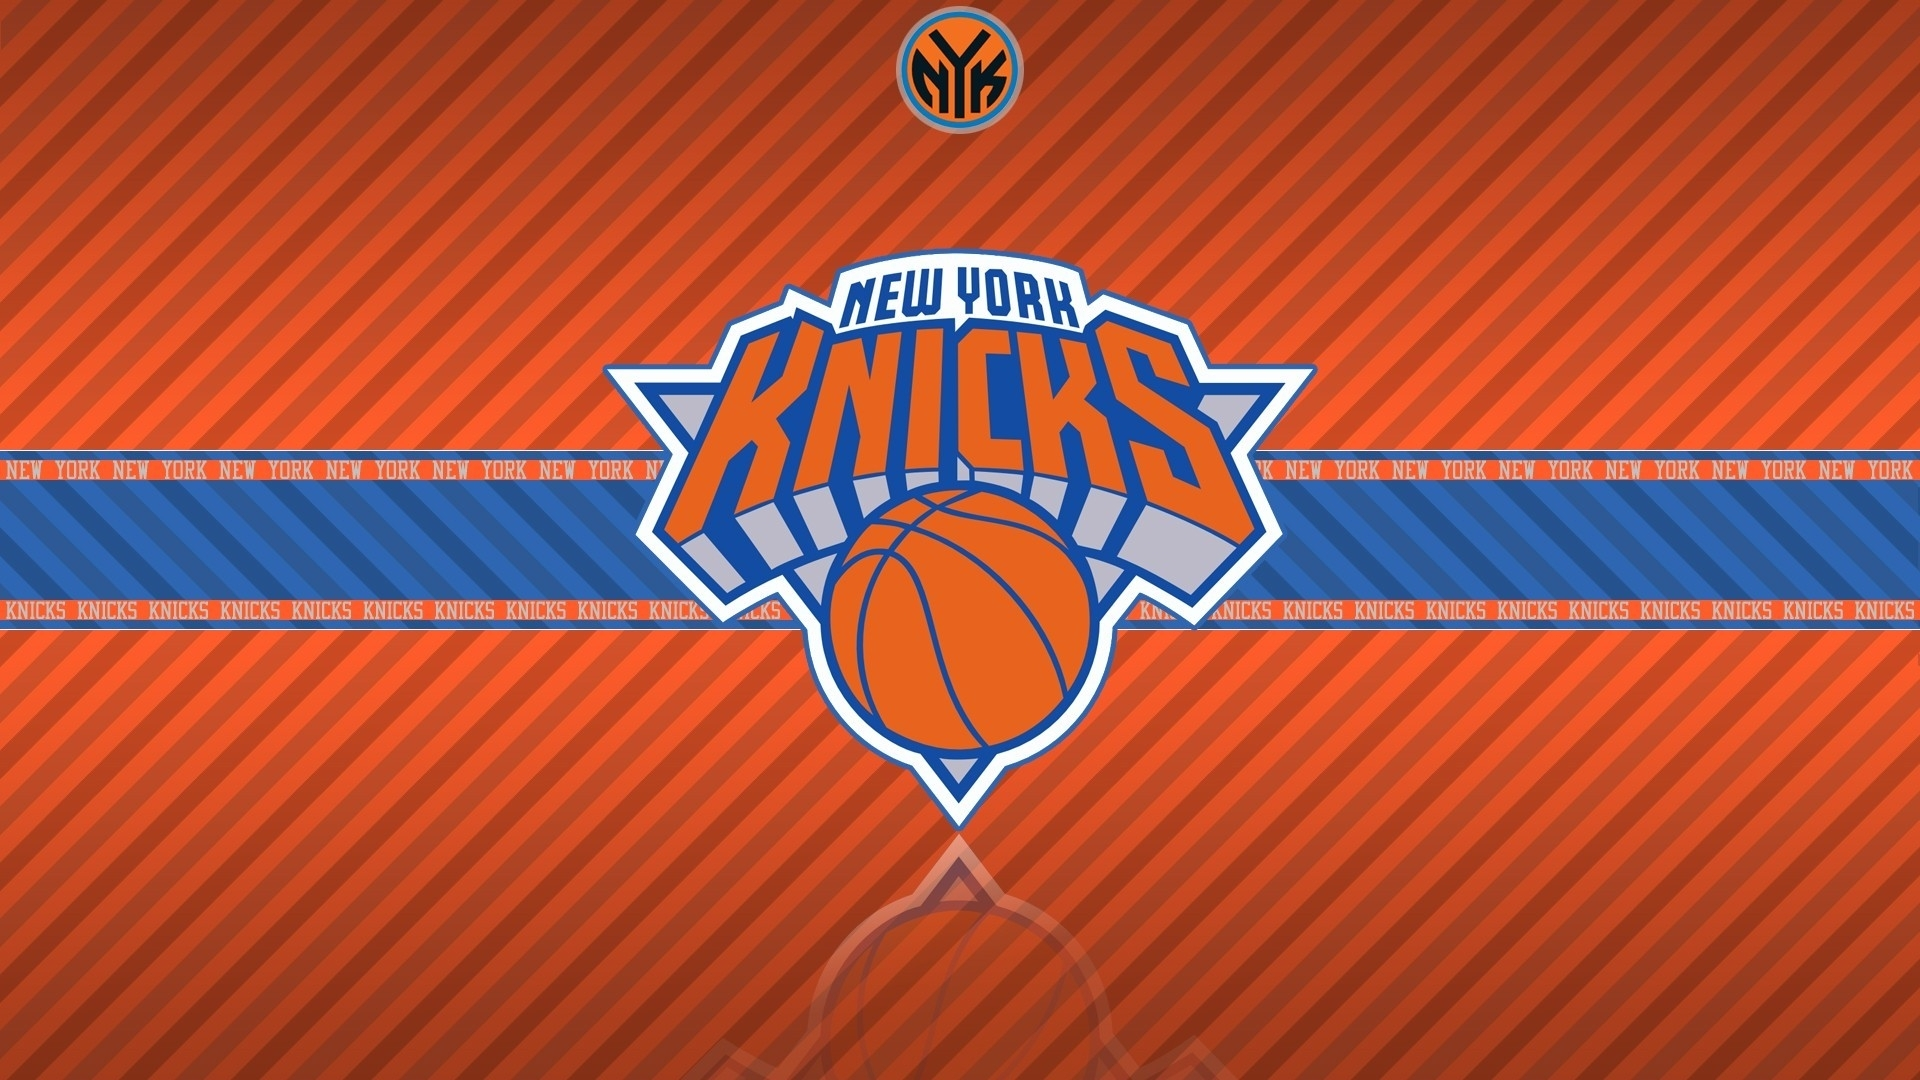 new york knicks hq background wallpapers 32606 - baltana